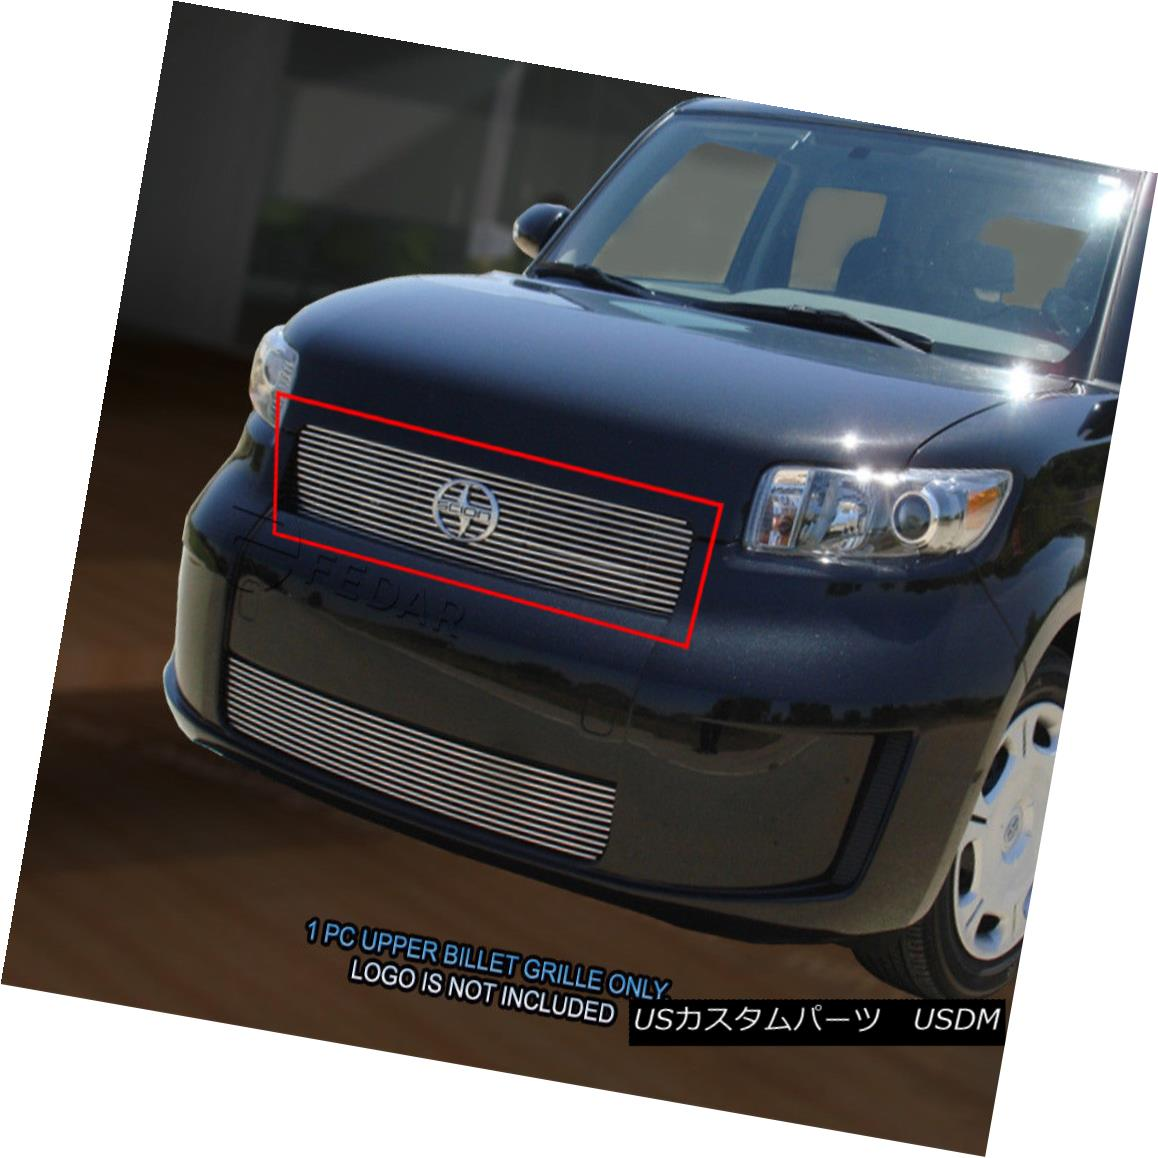 グリル Fedar Fits 08-10 Scion XB Polished Billet Grille Insert Fedar Fitch 08-10 Scion XBポリッシュビレットグリルインサート